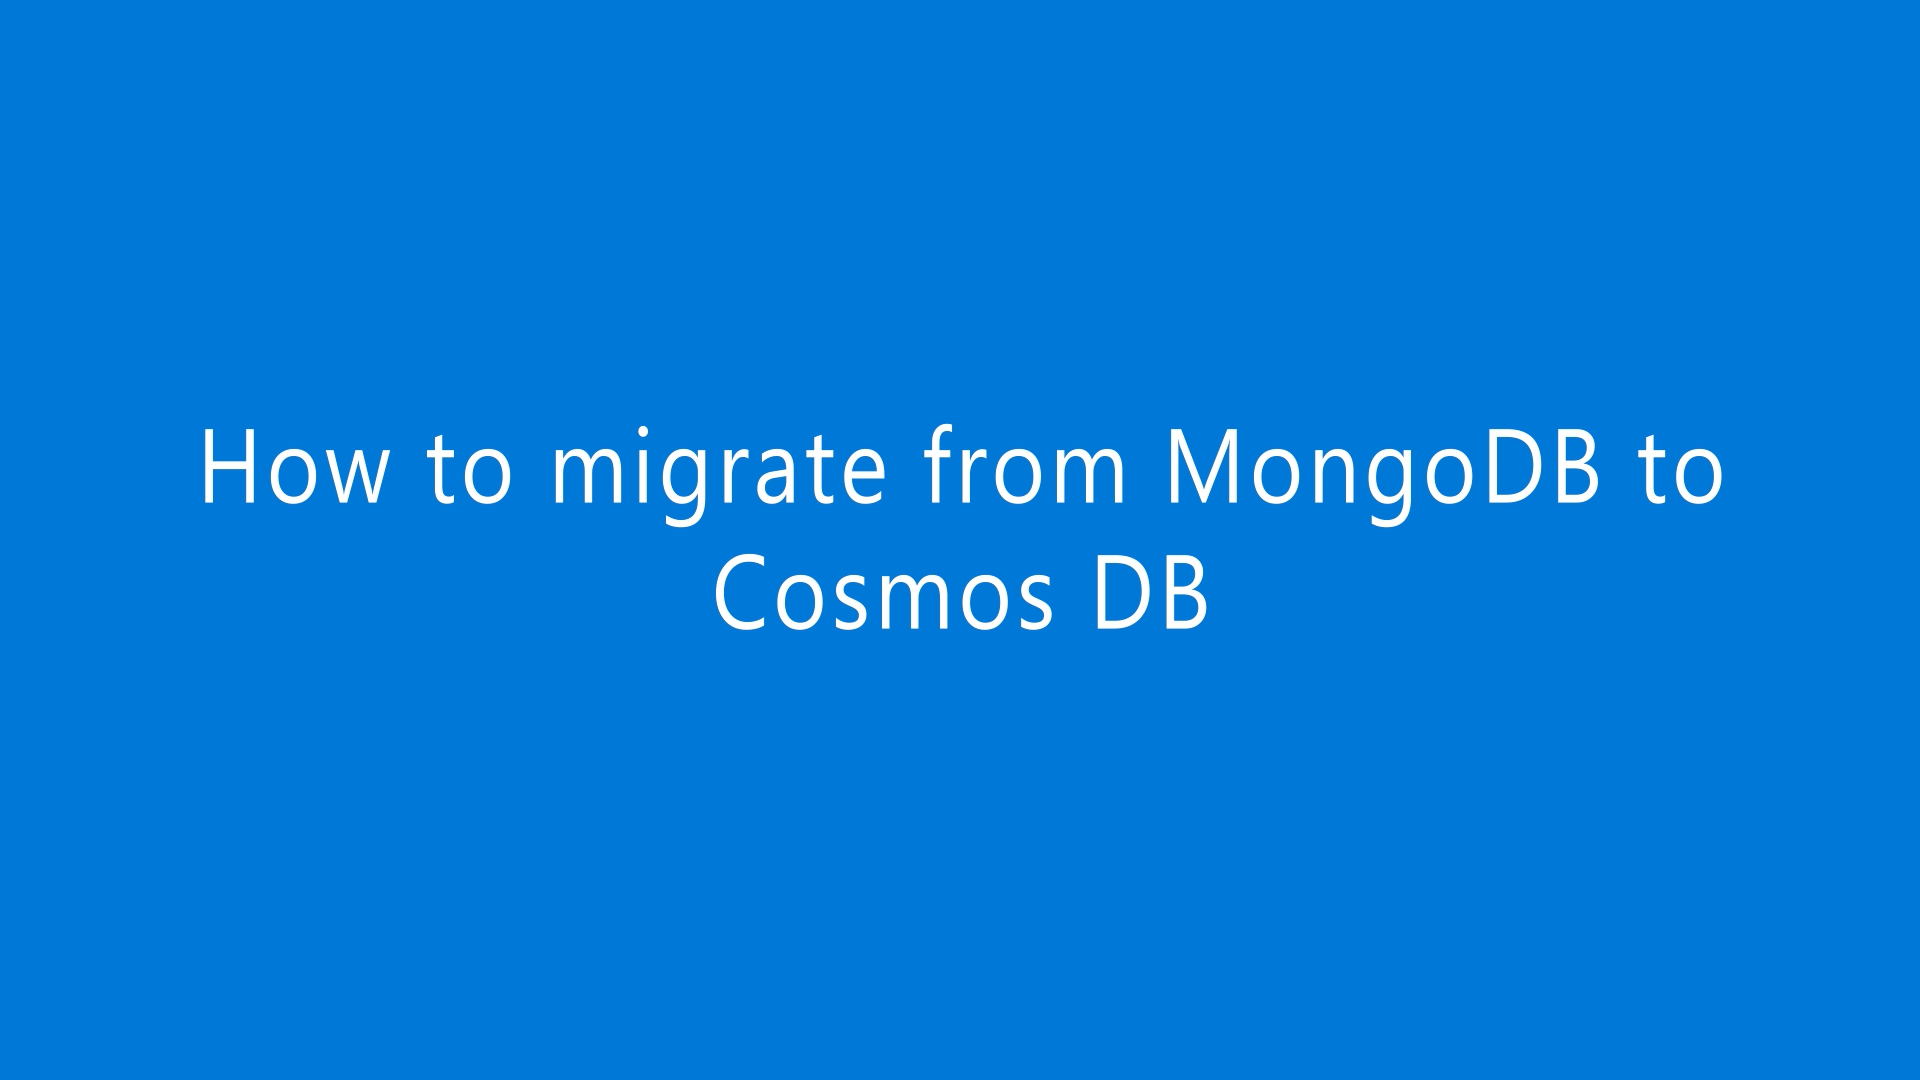 How to migrate MongoDB to Cosmos DB